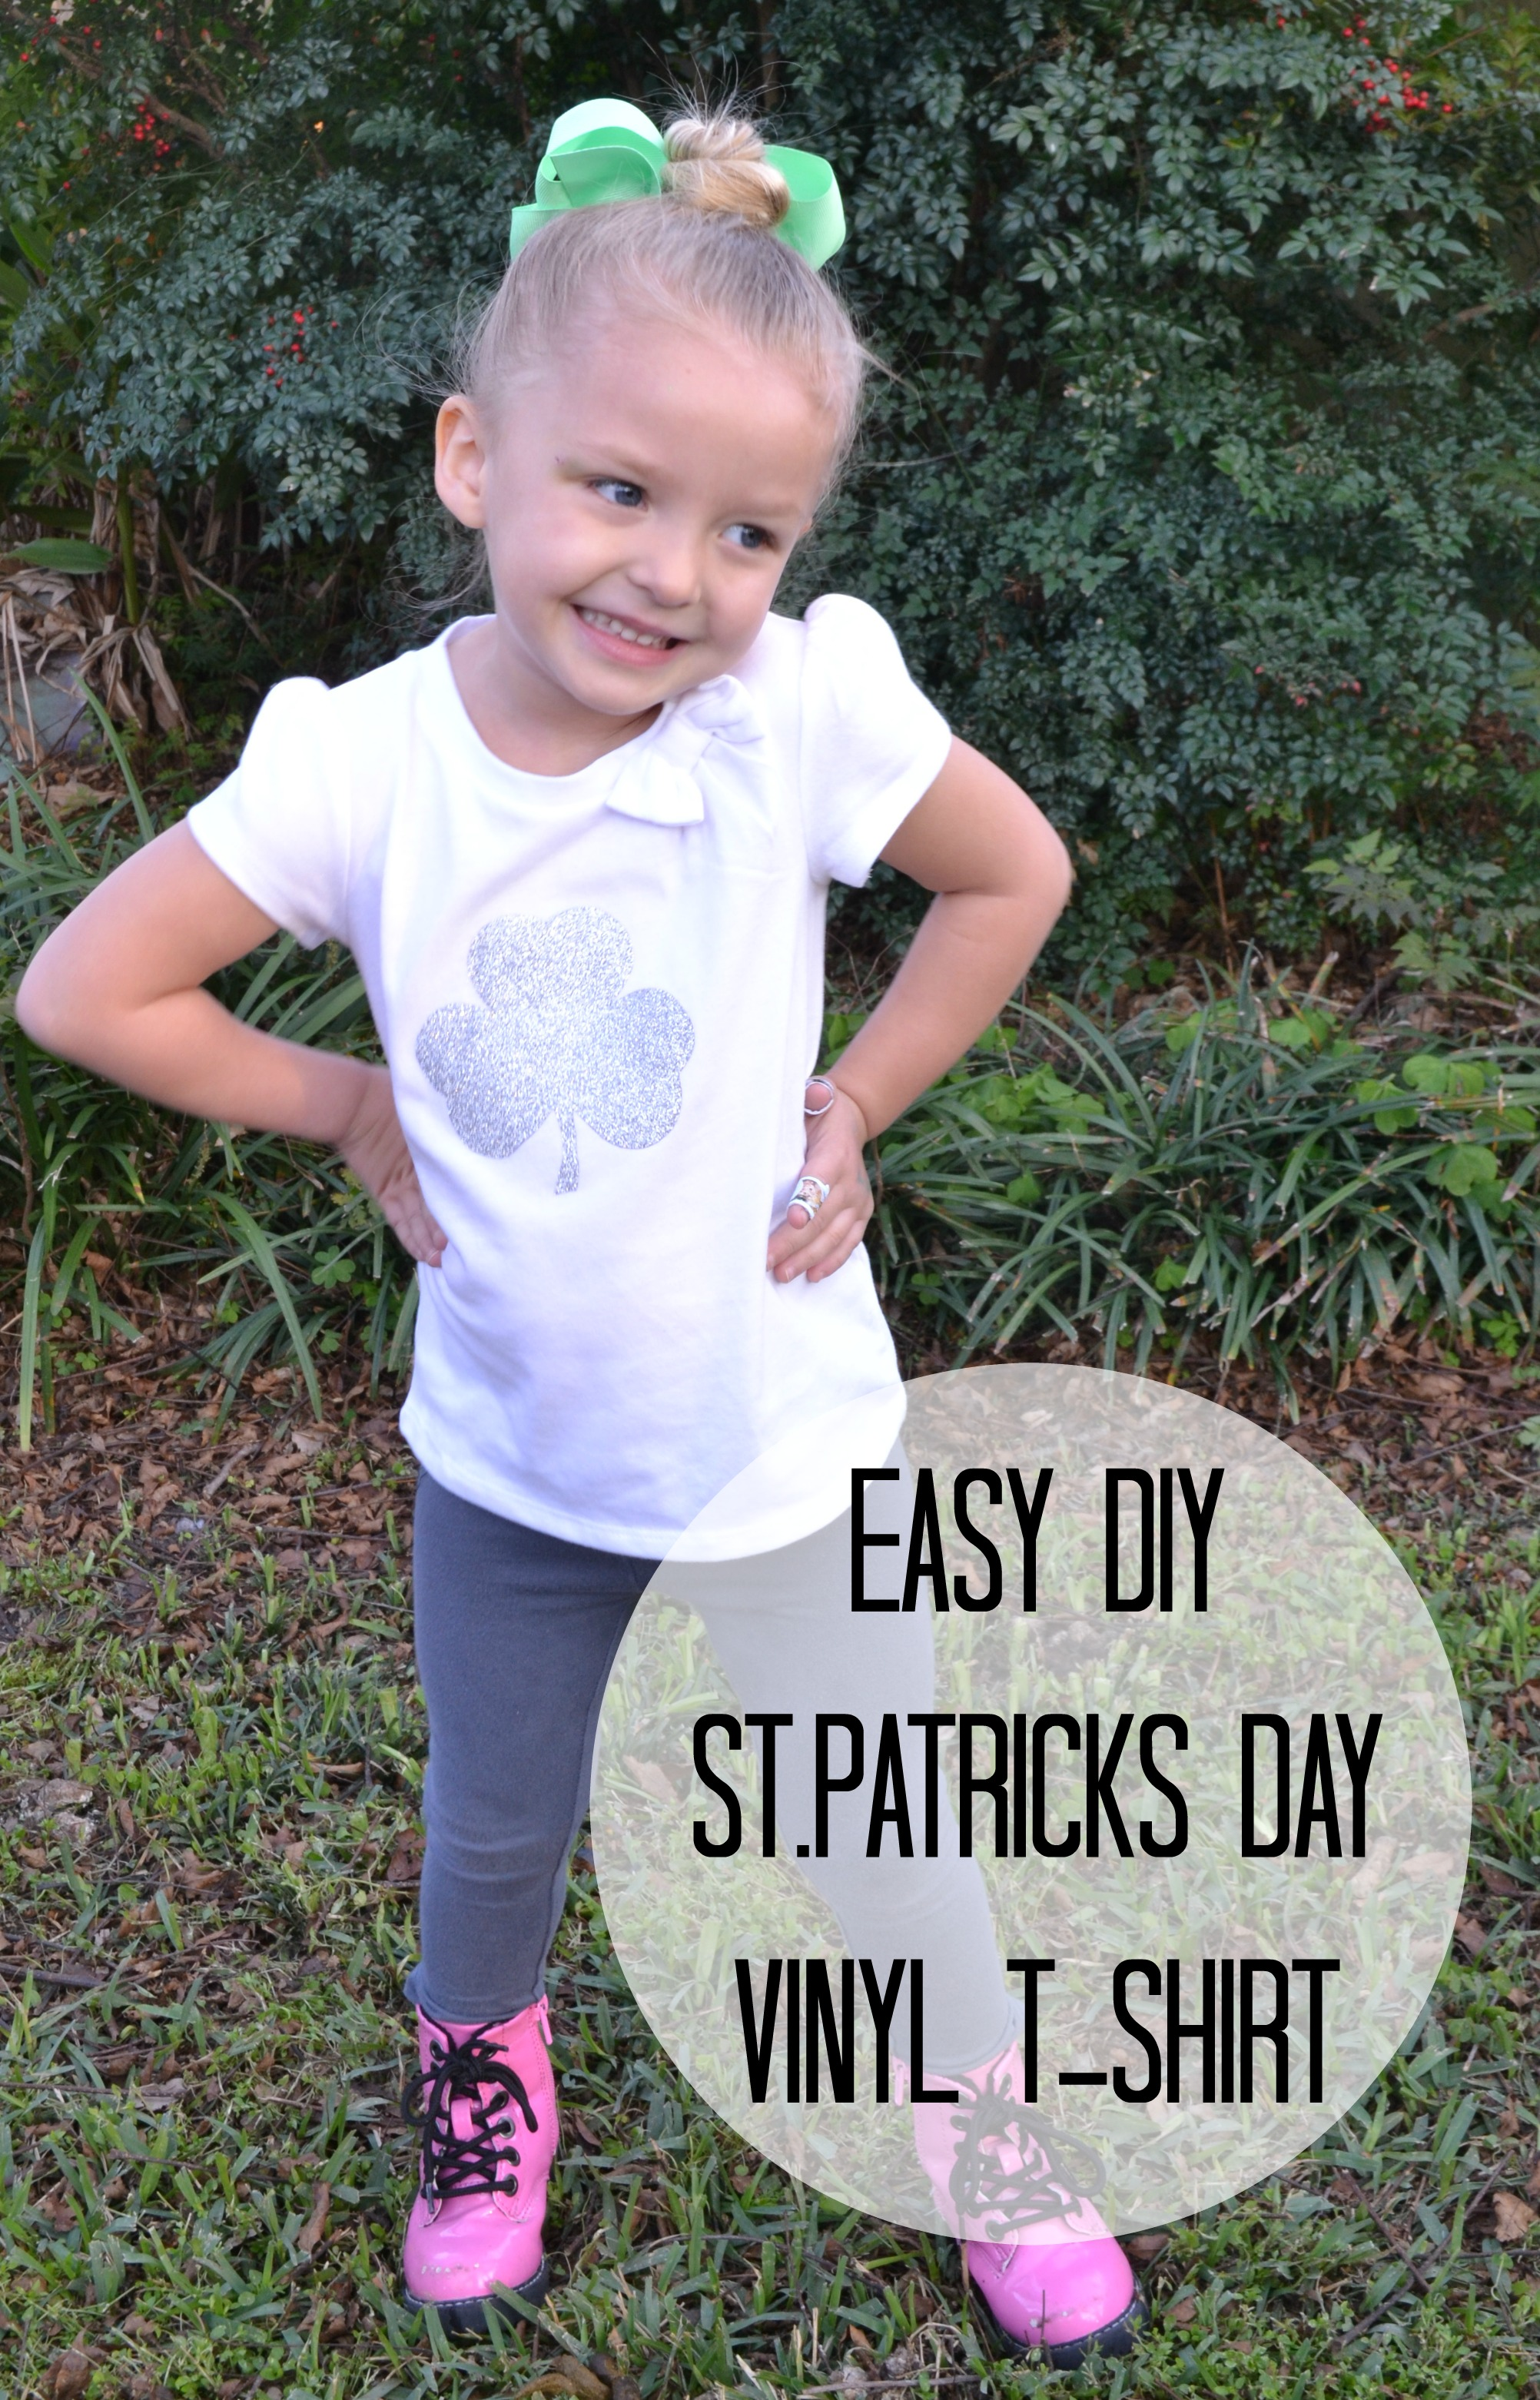 Easy DIY St.Patricks Day Vinyl T-shirt